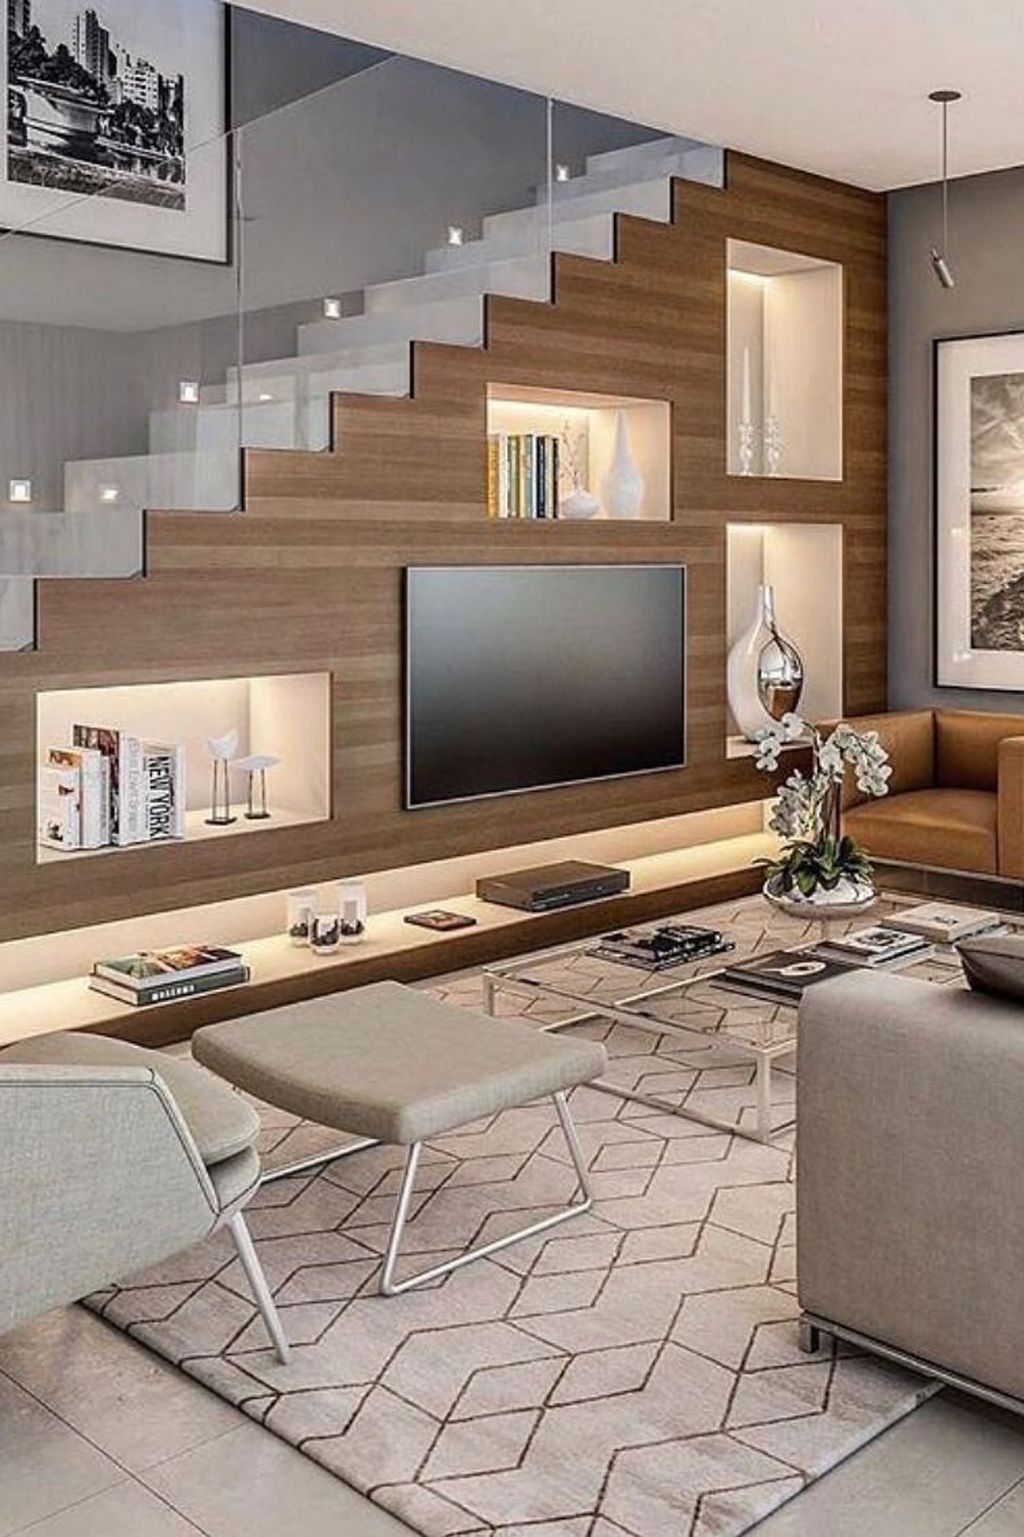 46 Outstanding Stair Design Ideas That Are Right For Your Living | Small Living Room With Stairs | Interior Design | Tiny | Cozy | Stairway | Bedroom